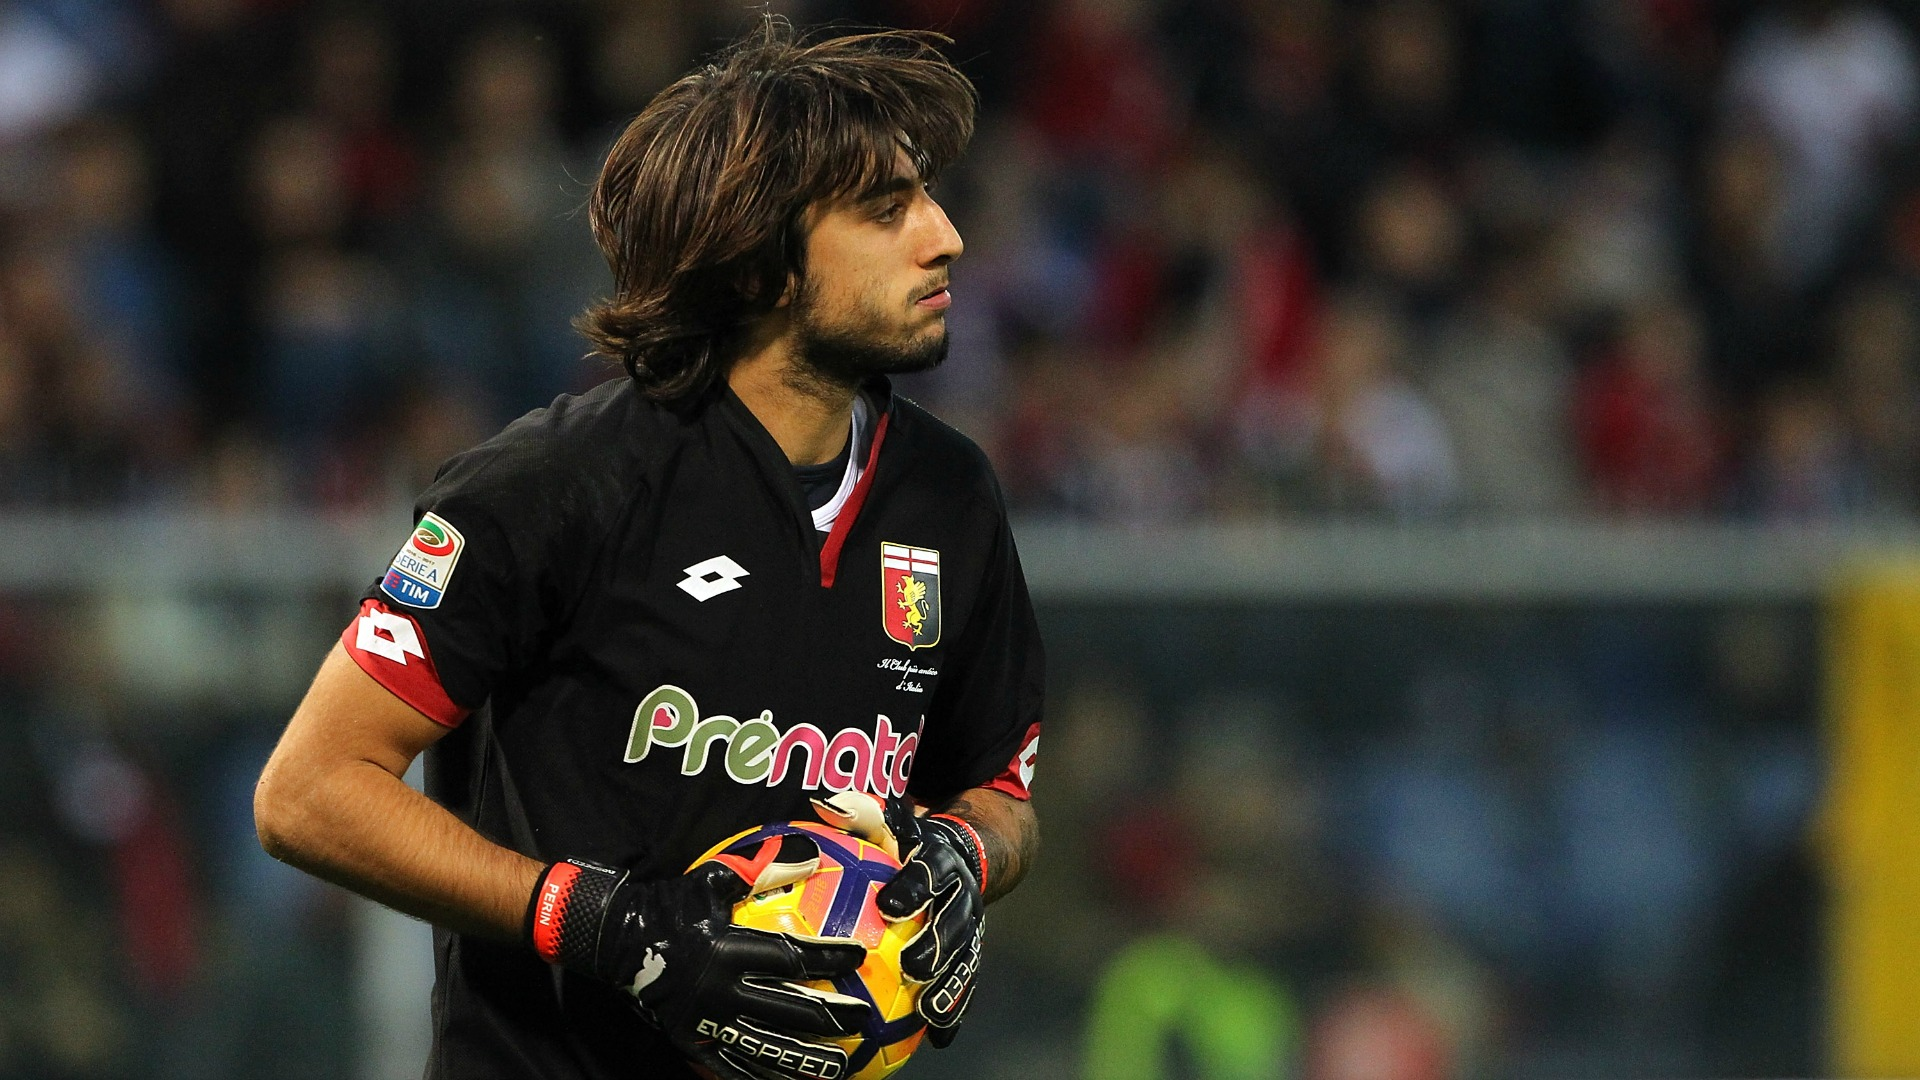 Perin in lacrime dopo l'infortunio